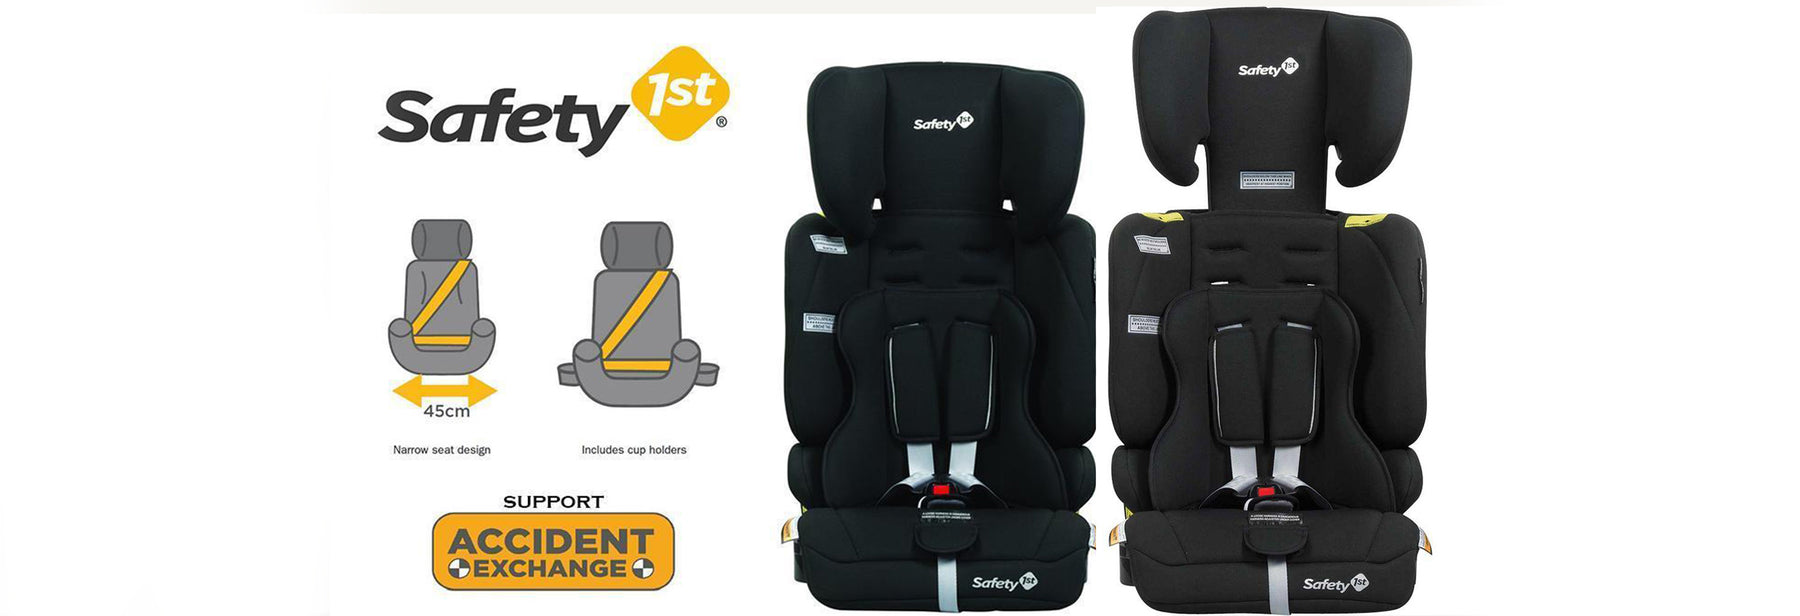 Super Narrow yet super comfortable. Check out the Safety 1st Solo Convertible Booster Seat